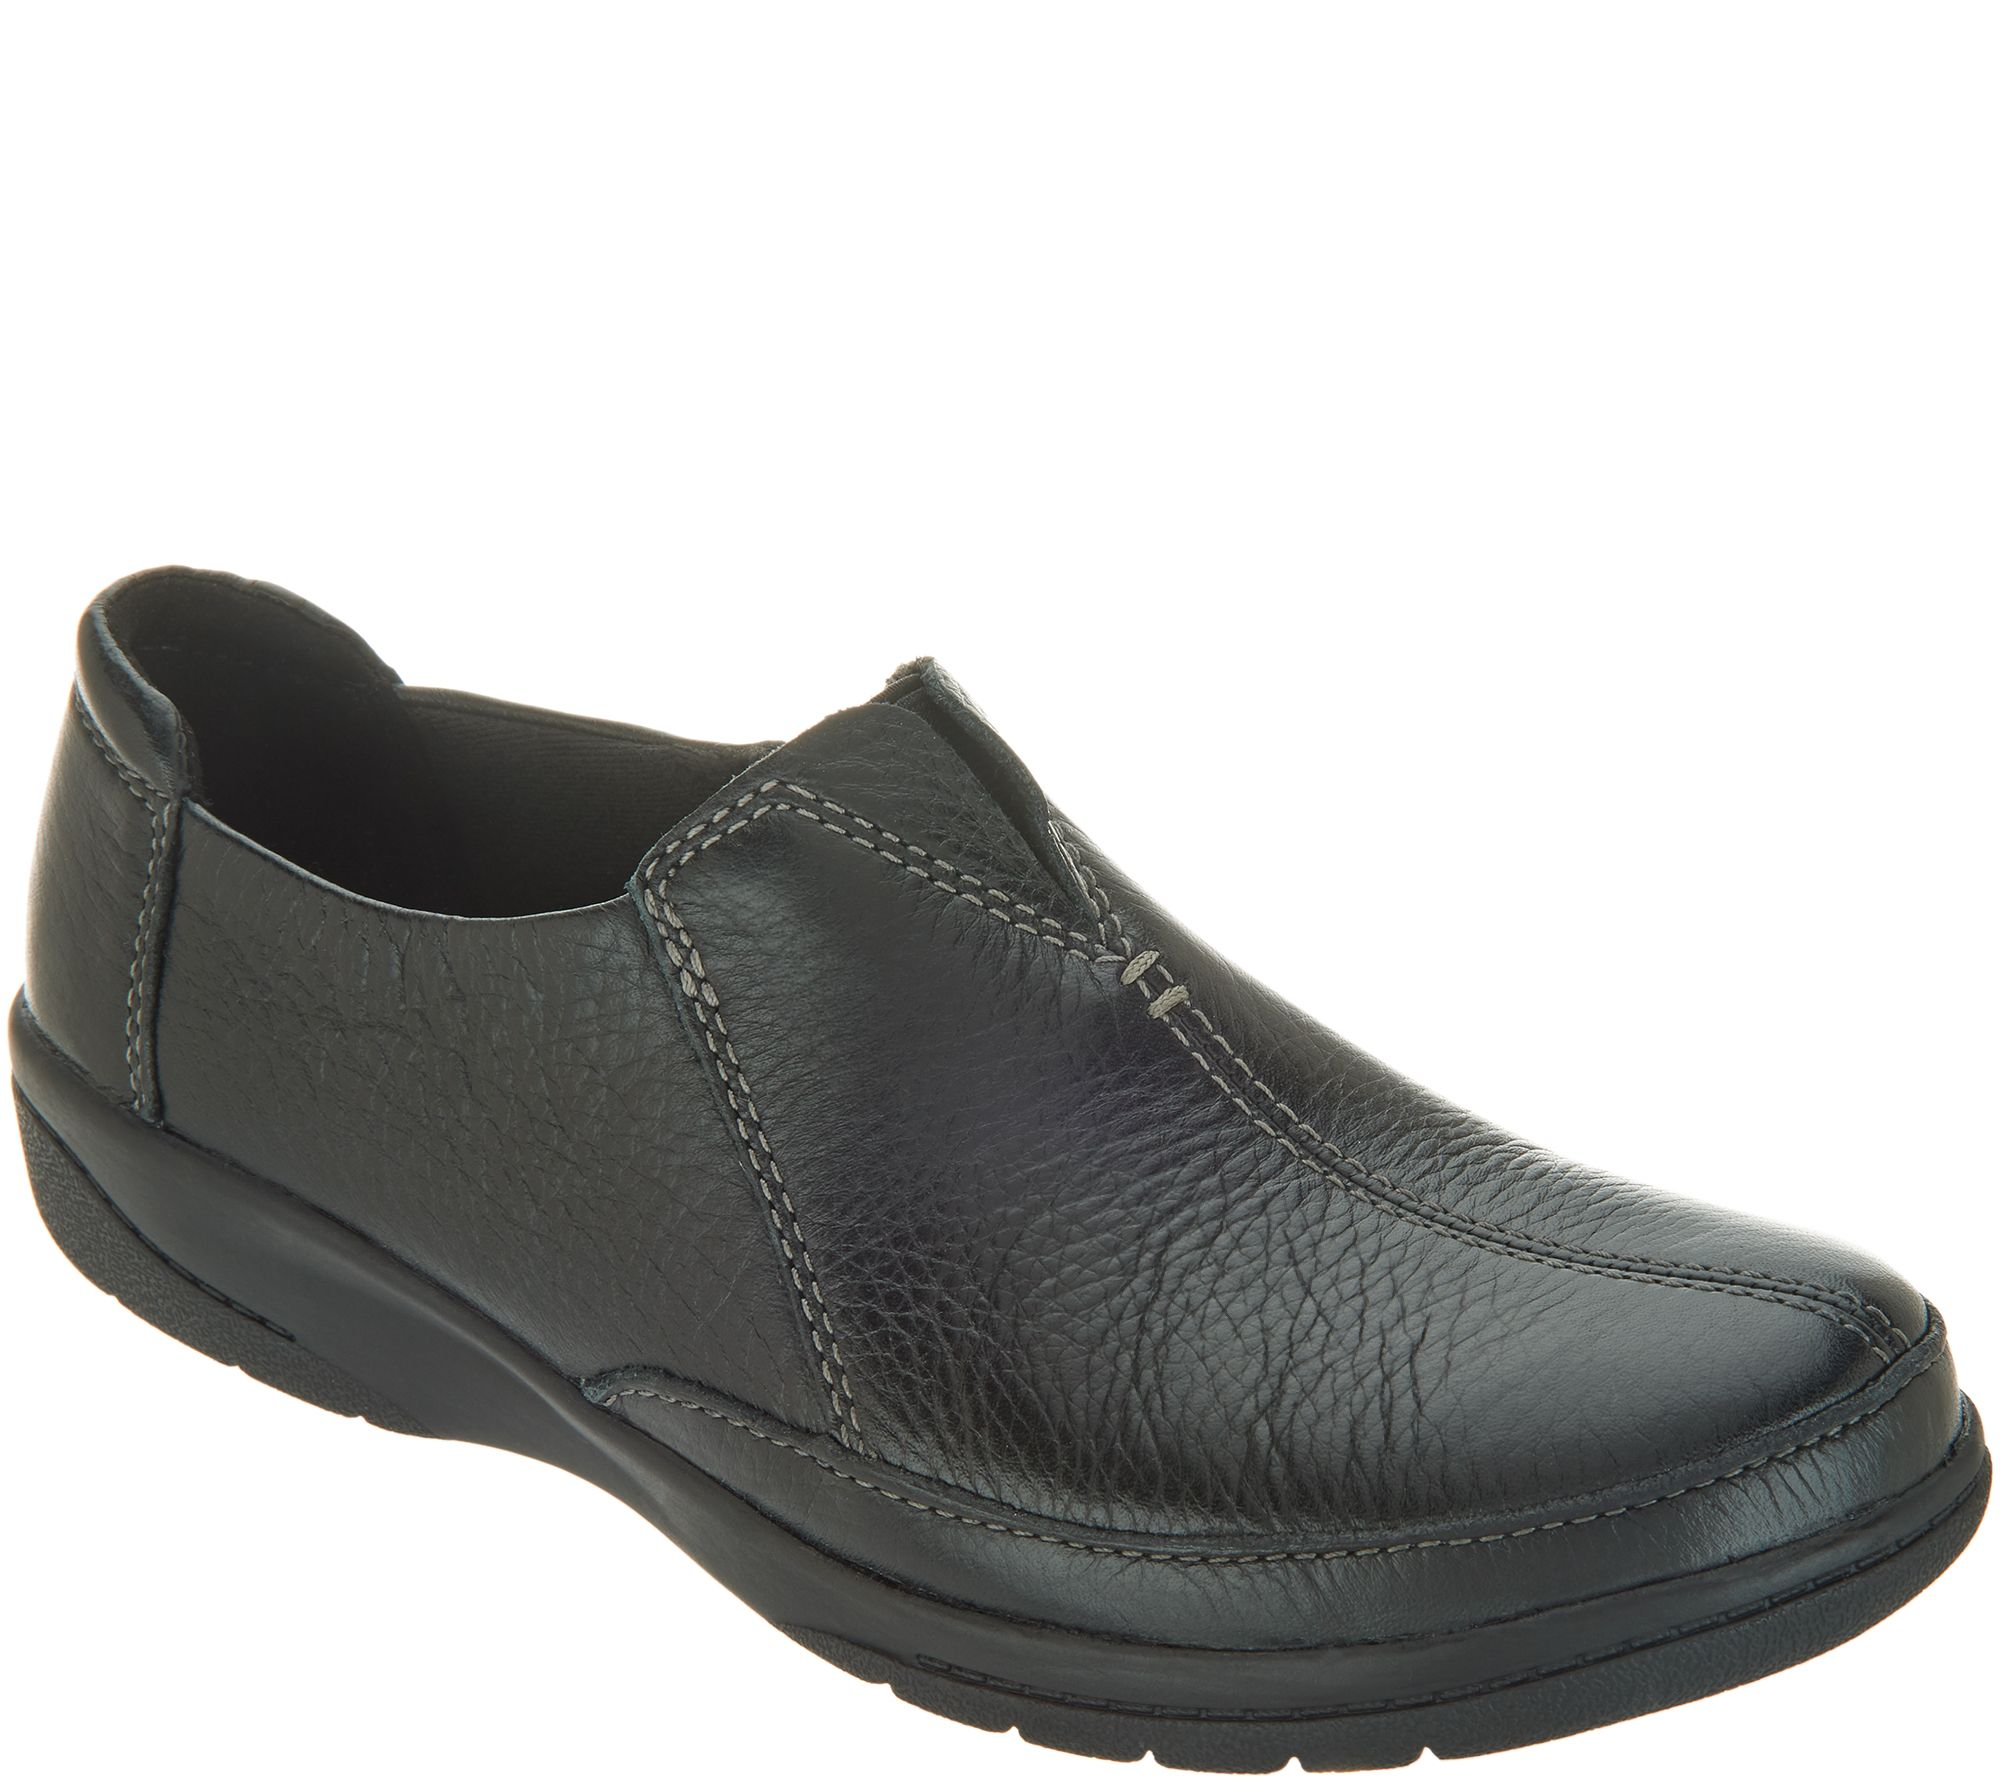 5859ee08e46 Clarks Leather Slip-On Shoes - Cheyn Bow - Page 1 — QVC.com